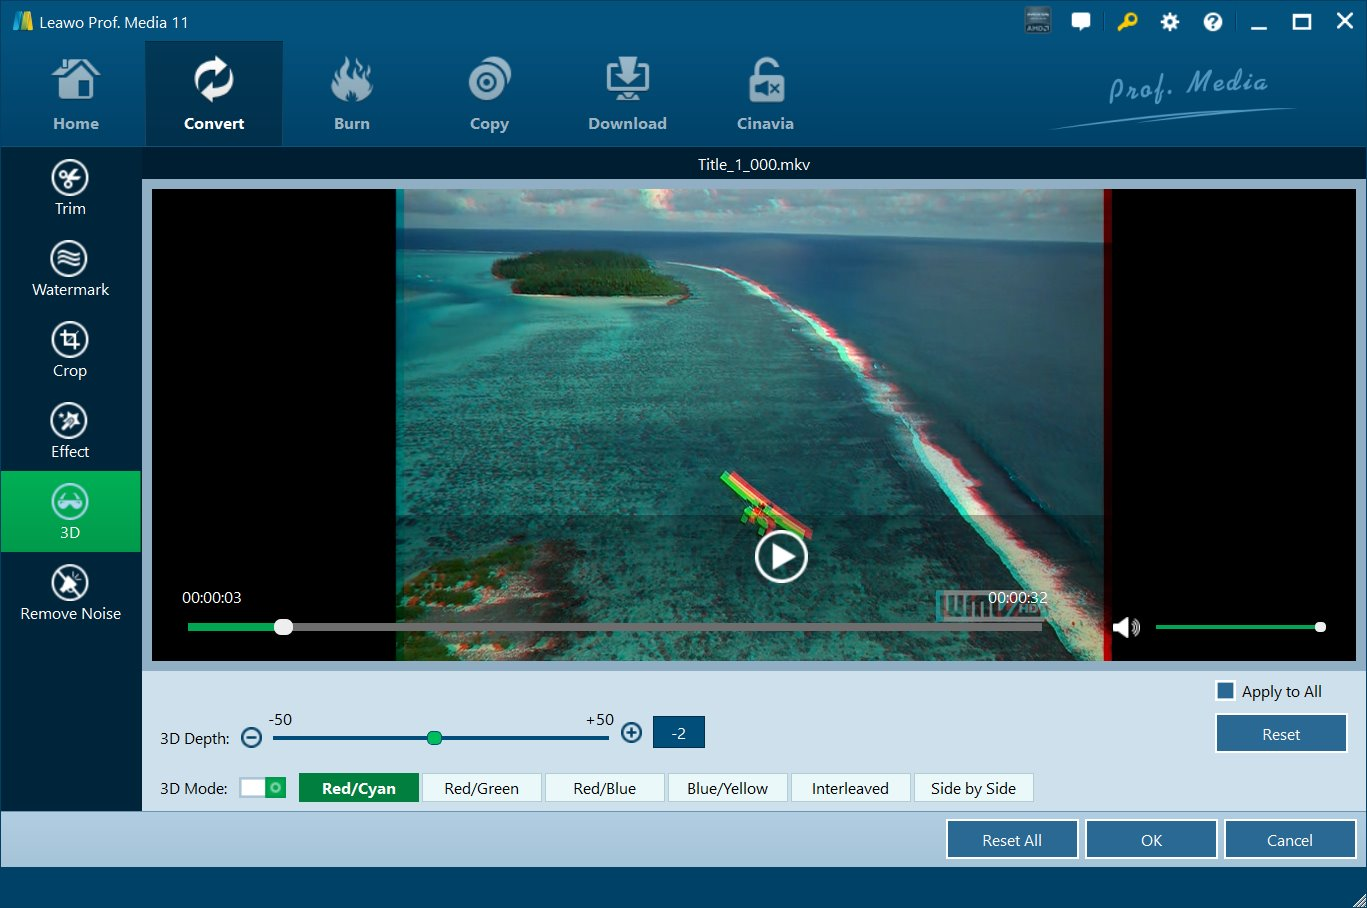 how-to-with-Leawo-Video-Converter 03